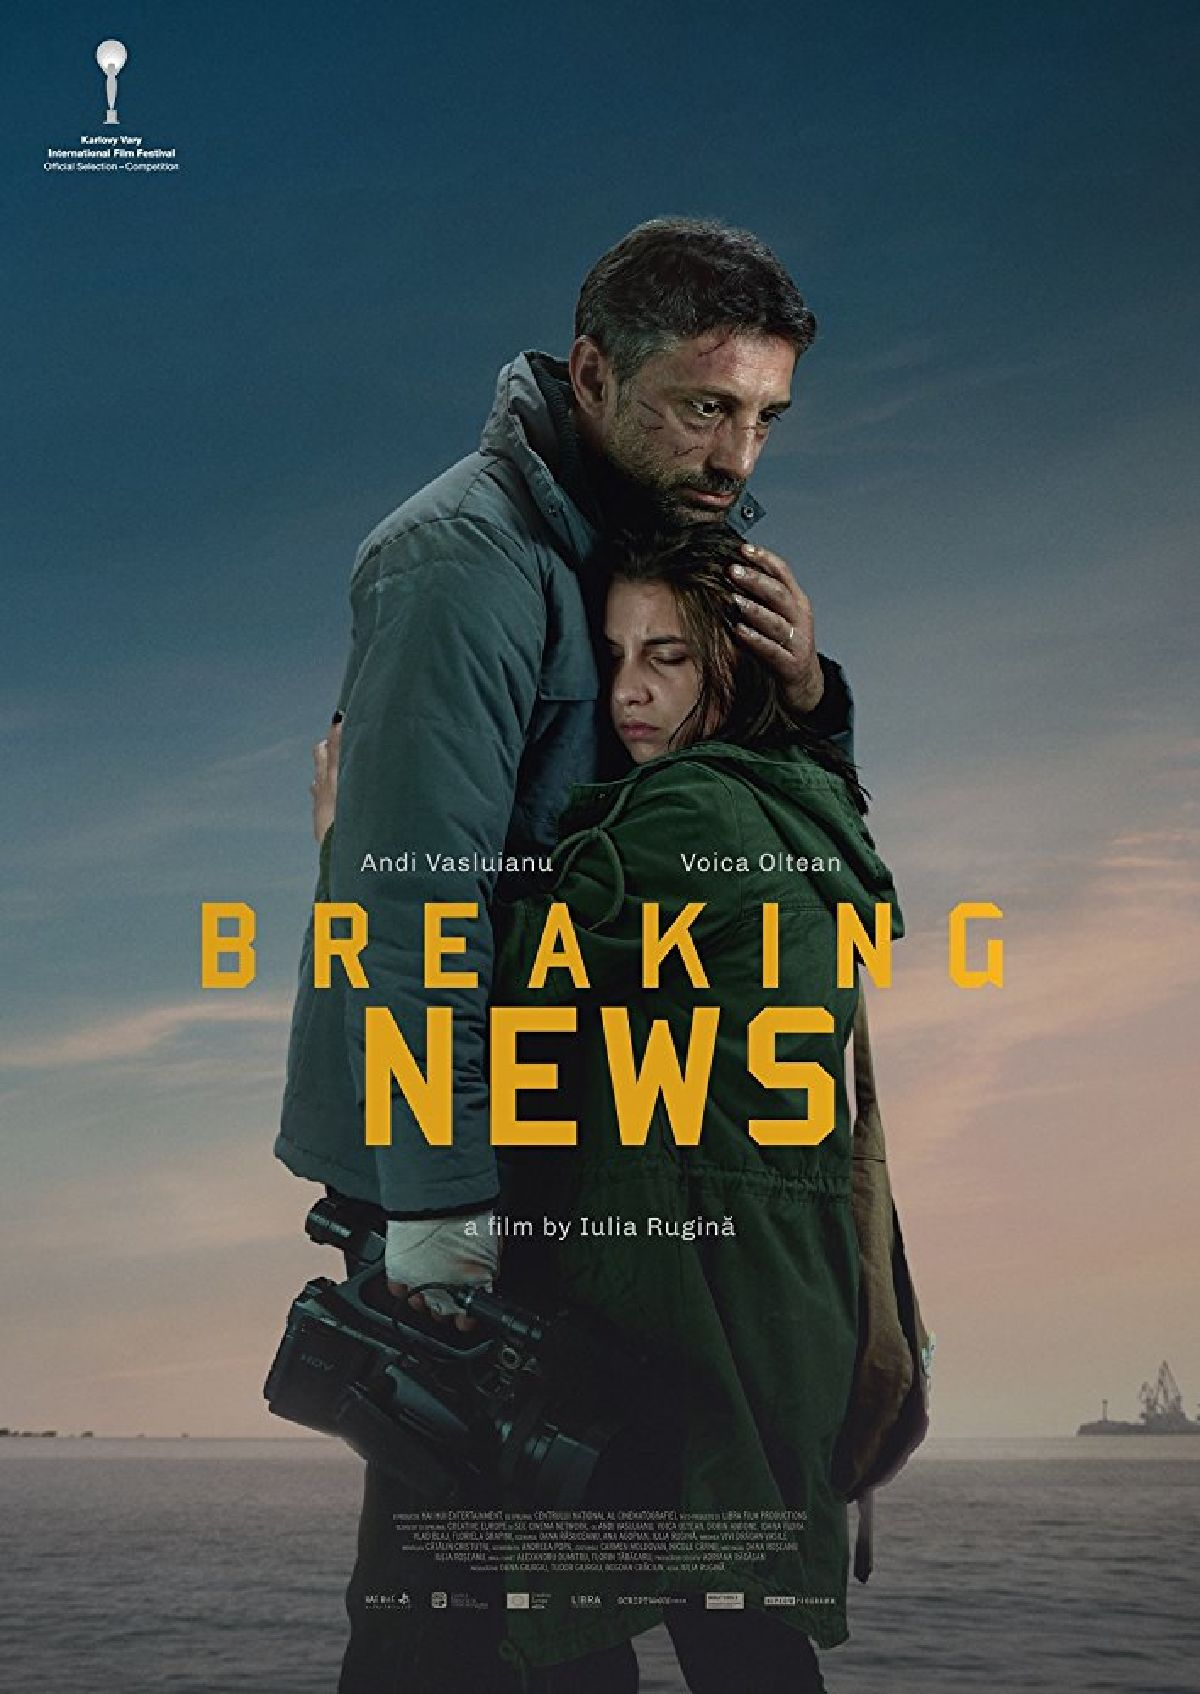 'Breaking News' movie poster